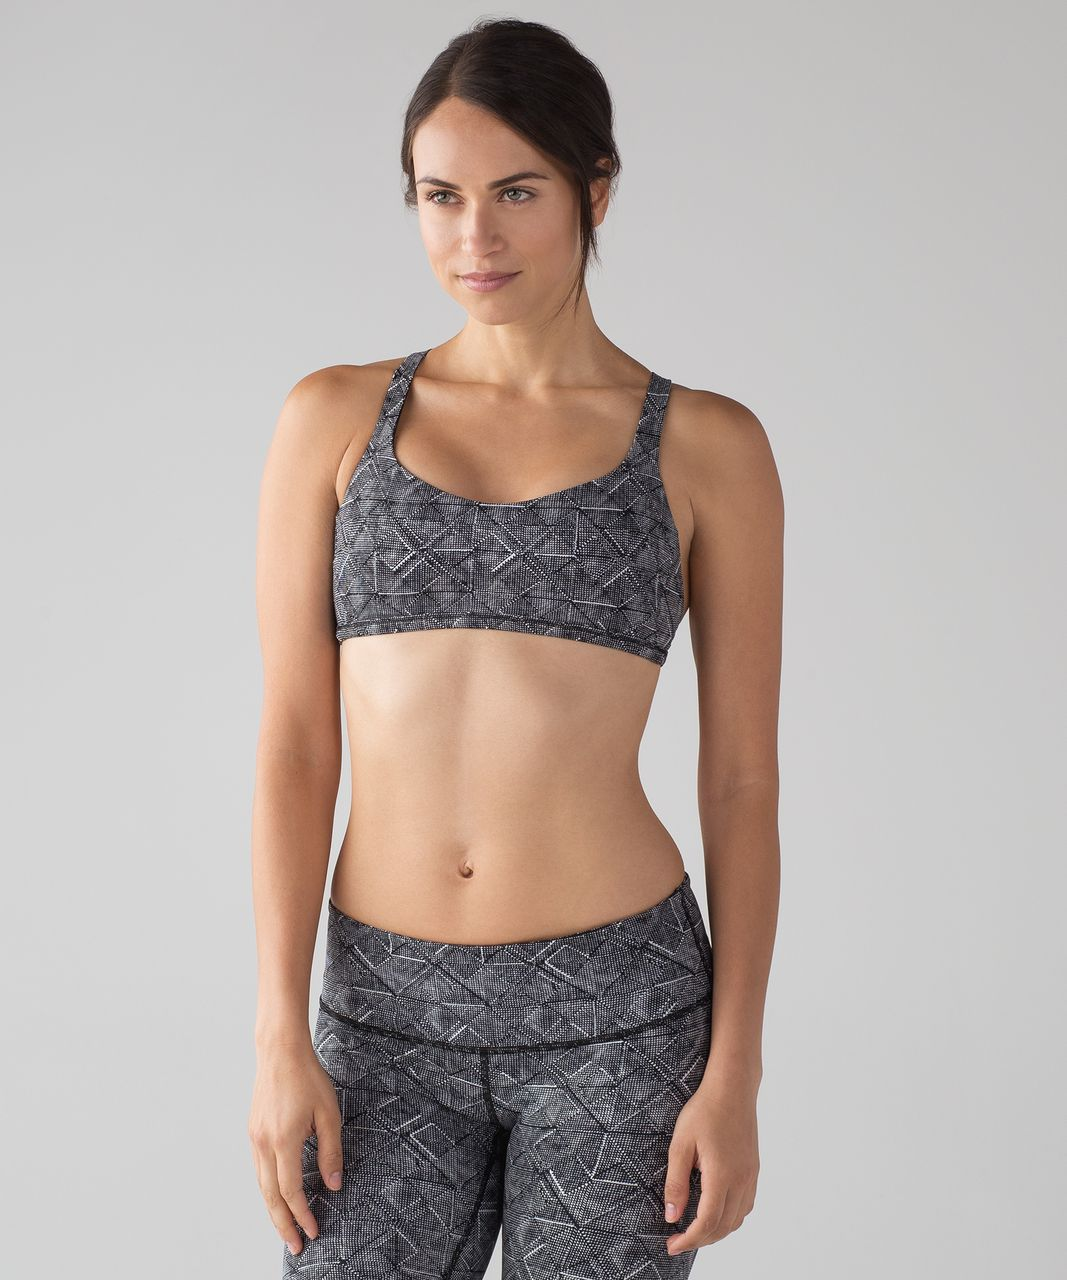 68751a1de2 Lululemon Free To Be Zen Bra - Formation Alpine White Black - lulu fanatics